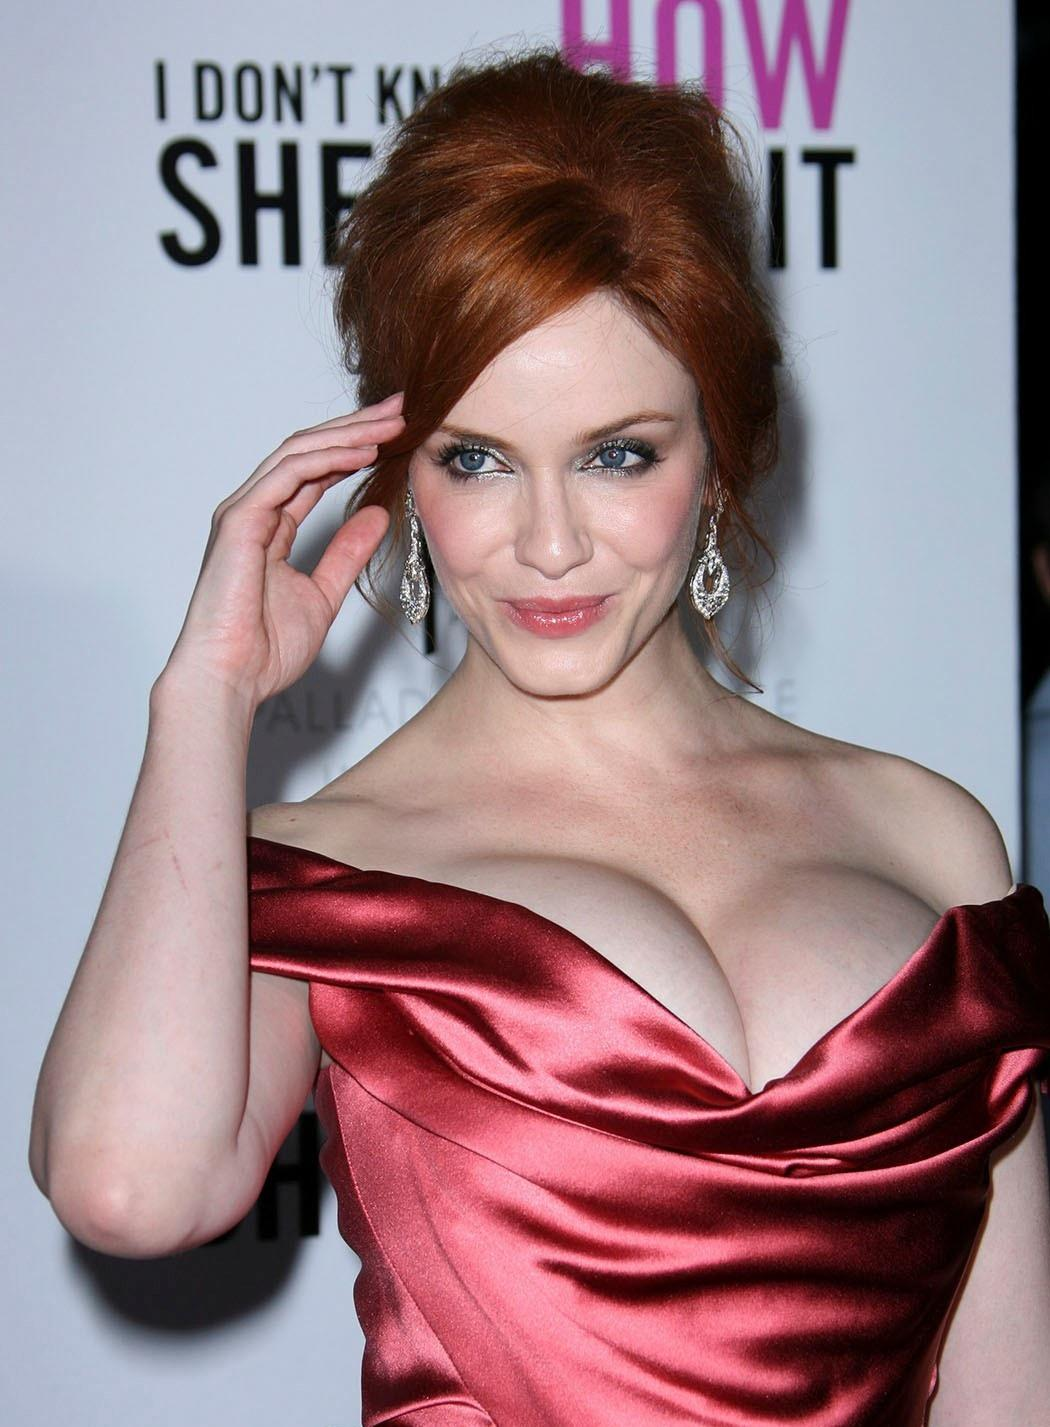 christina hendricks imdb